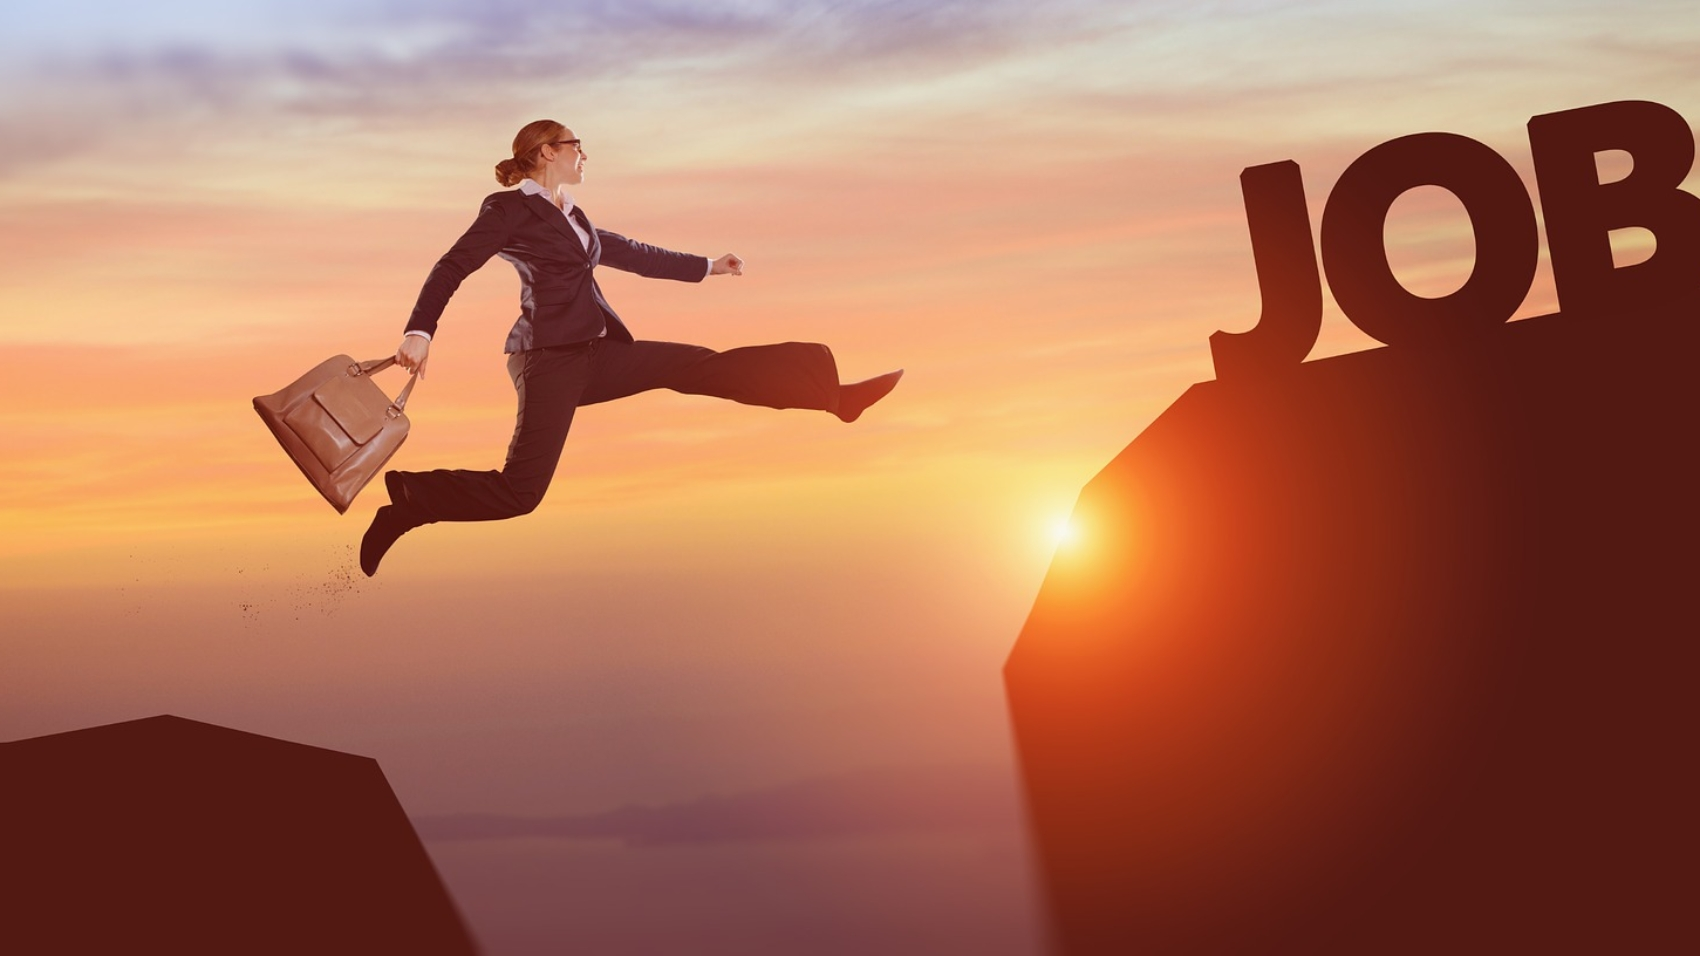 Looking to have a fulfilling career - Ask yourself these 5 key questions